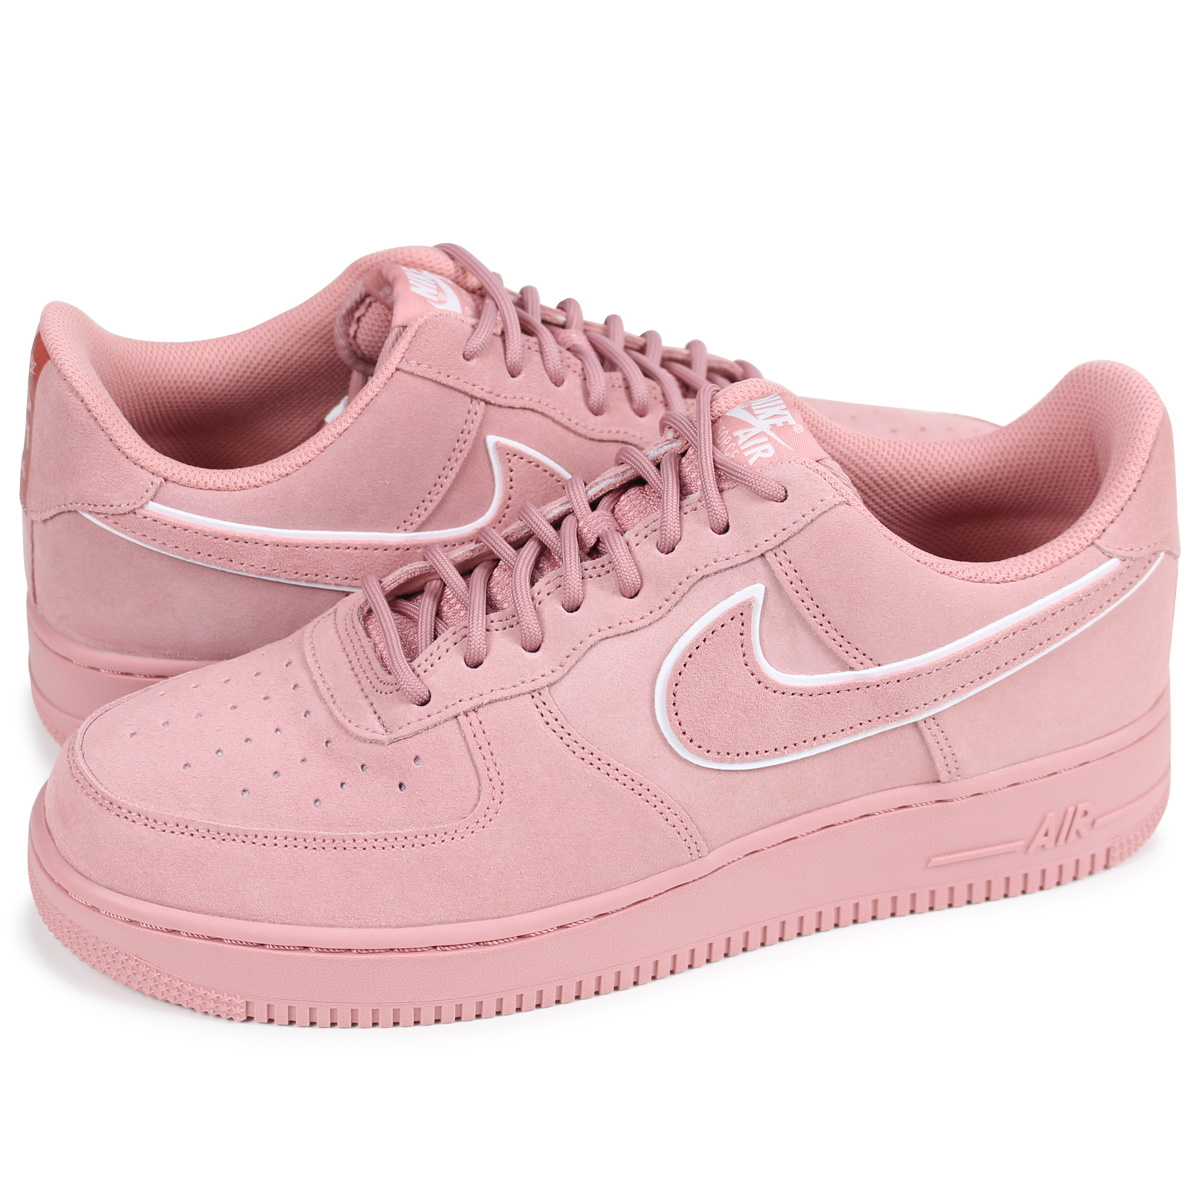 NIKE AIR FORCE 1 SUEDE Nike air force 1 07 LV8 sneakers men AA1117 601 pink [load planned Shinnyu load in reservation product 330 containing]